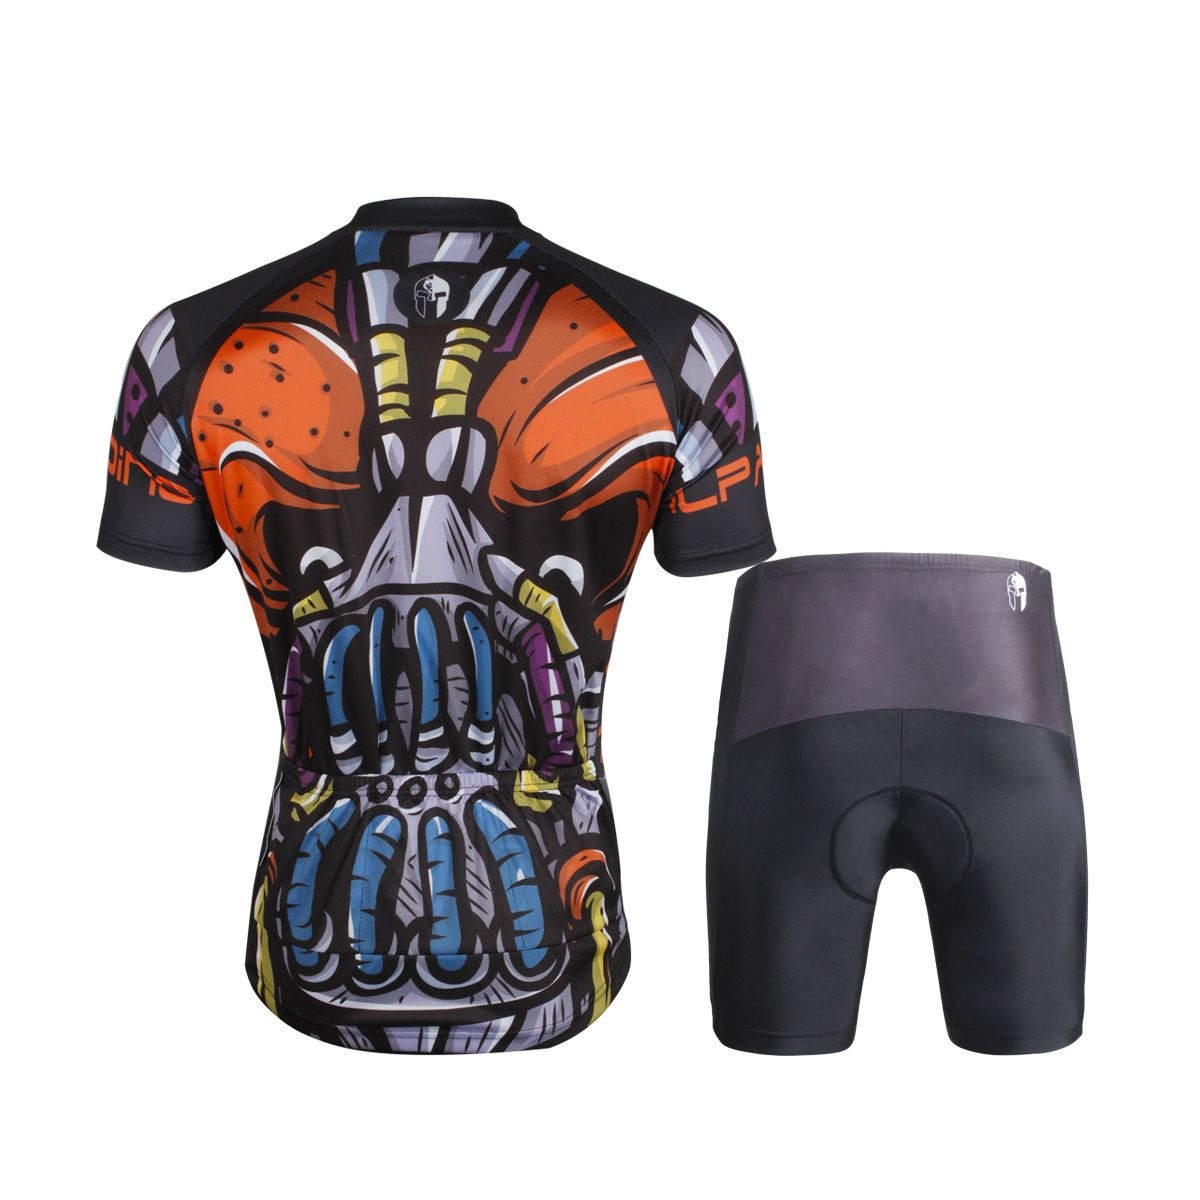 Great Cycling Kits a2be15d7a